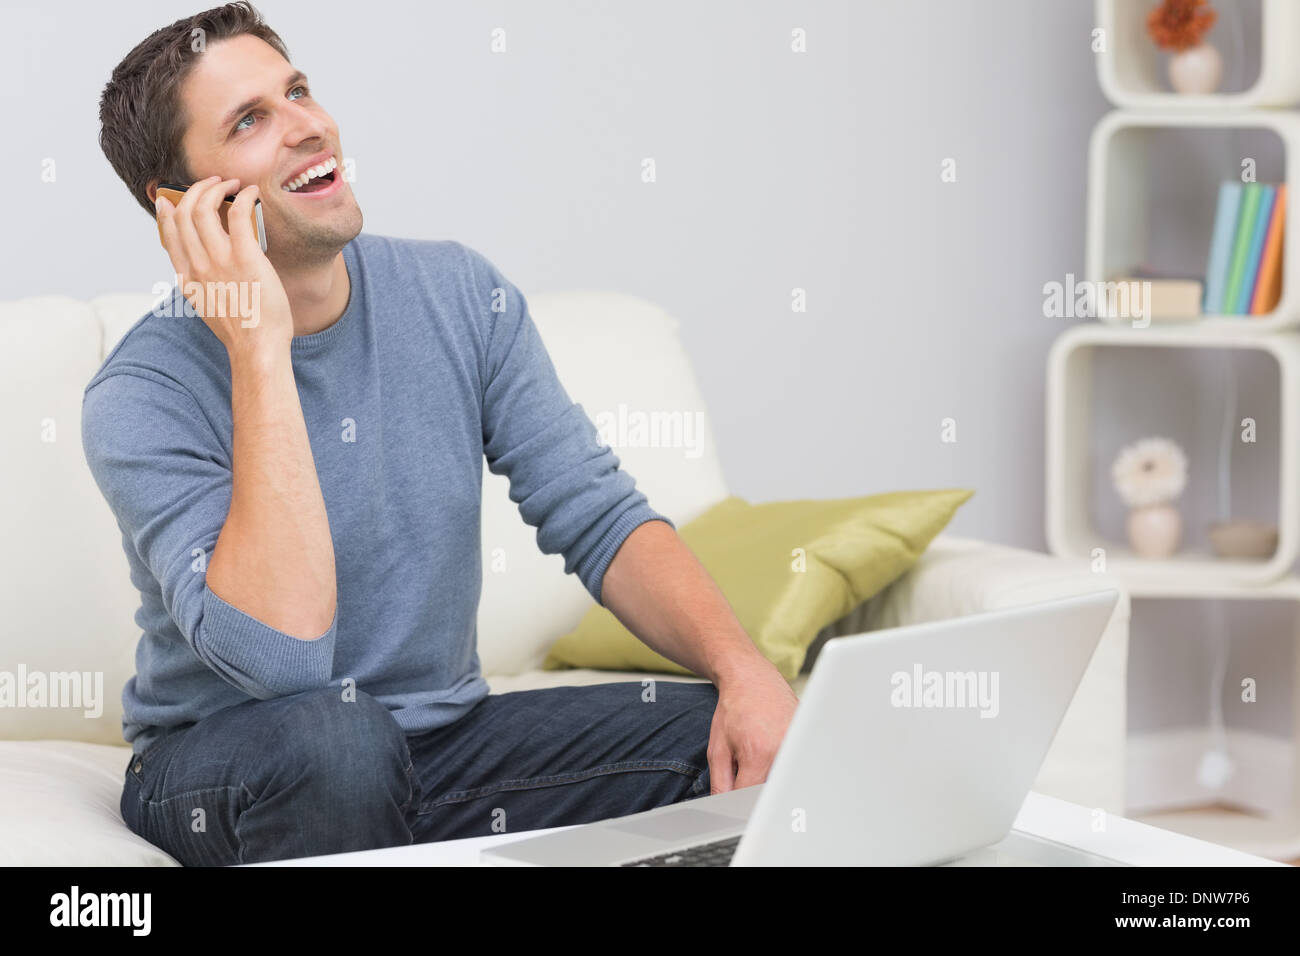 Cheerful man using cellphone and laptop in living room - Stock Image